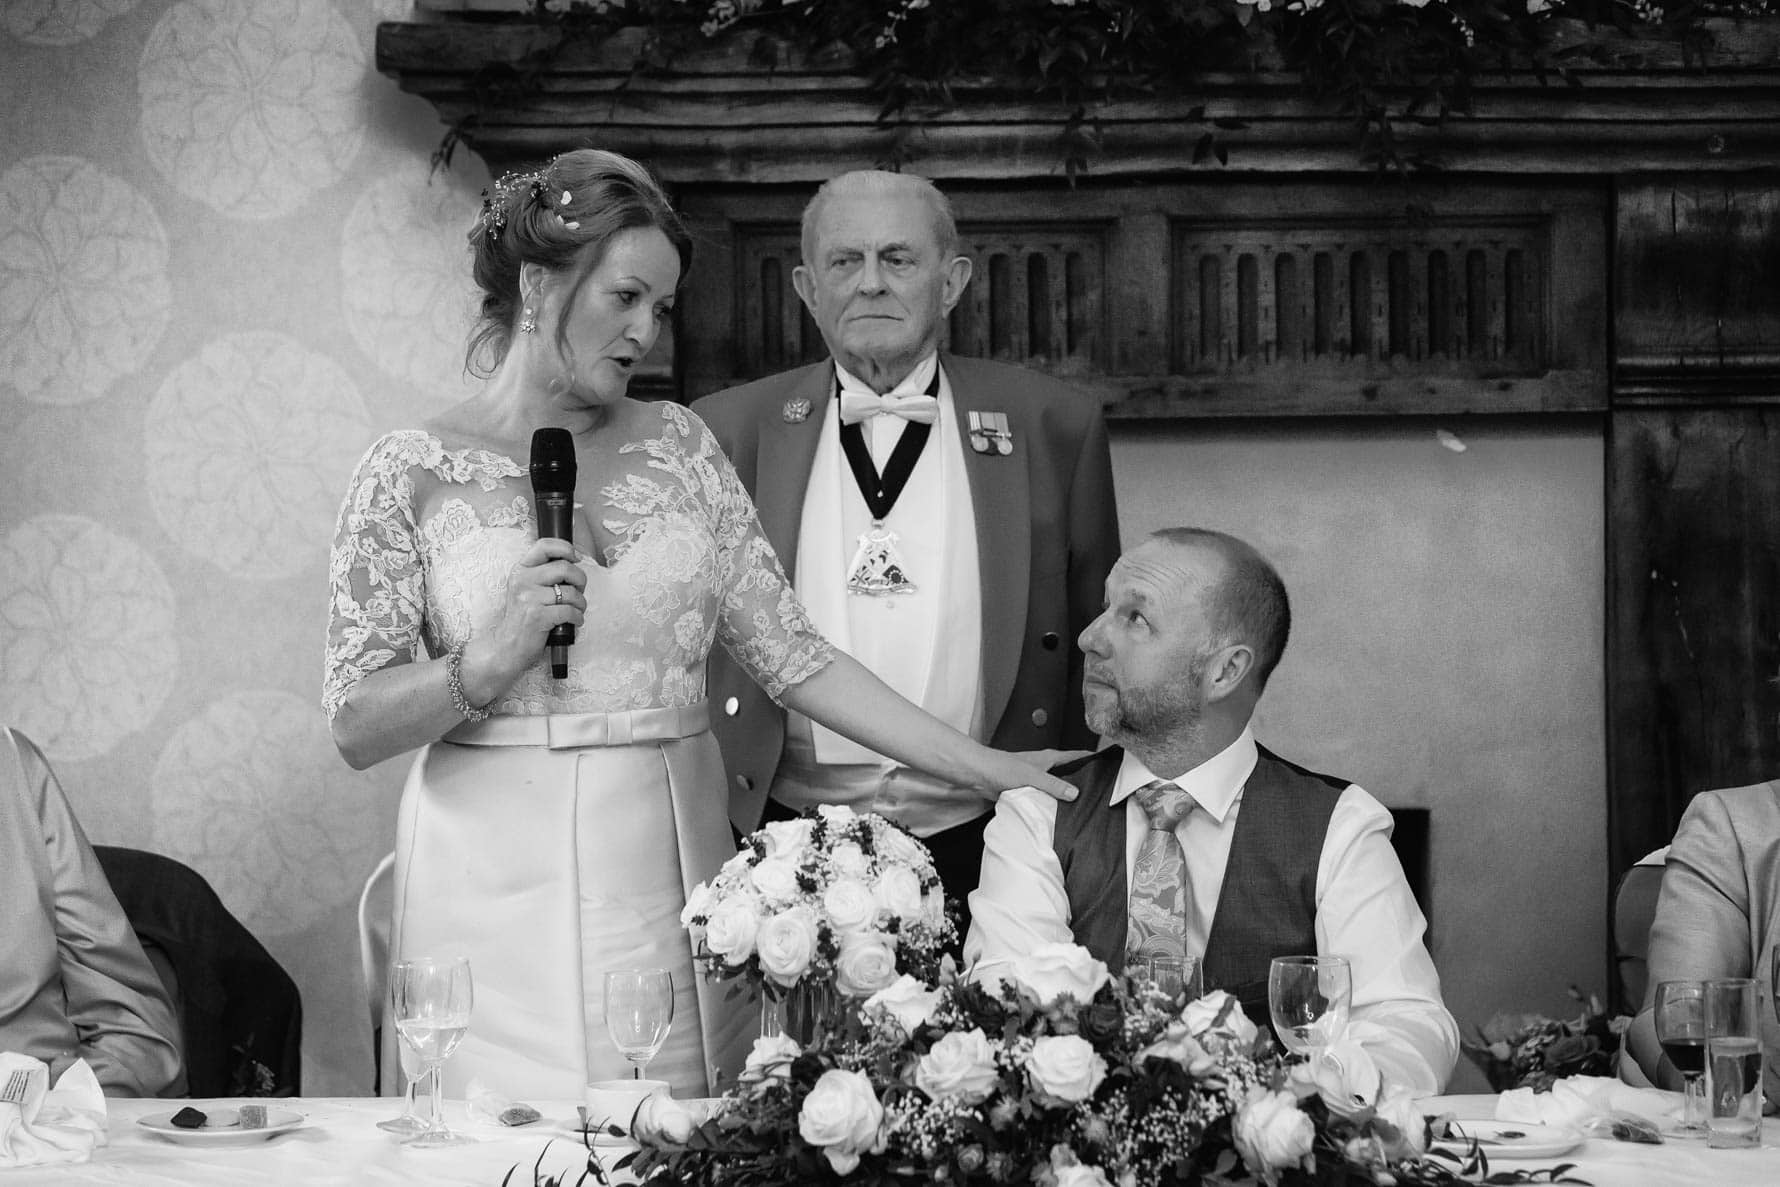 A touching moment between the bride and her new husband